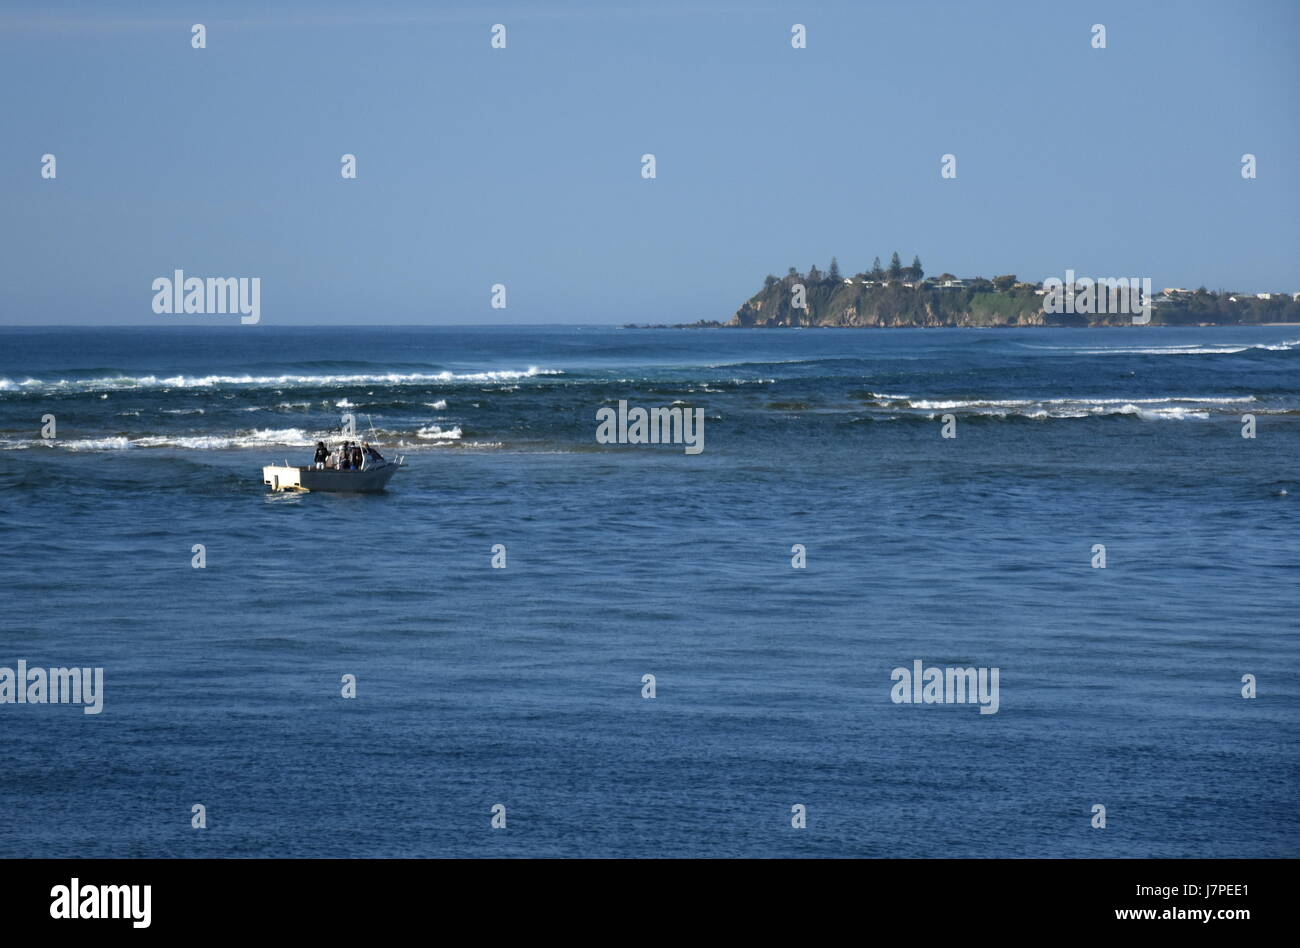 Fishing boat with people on the sea at Tuross Head. Potato Point in the background. Tuross Head is a seaside village Stock Photo